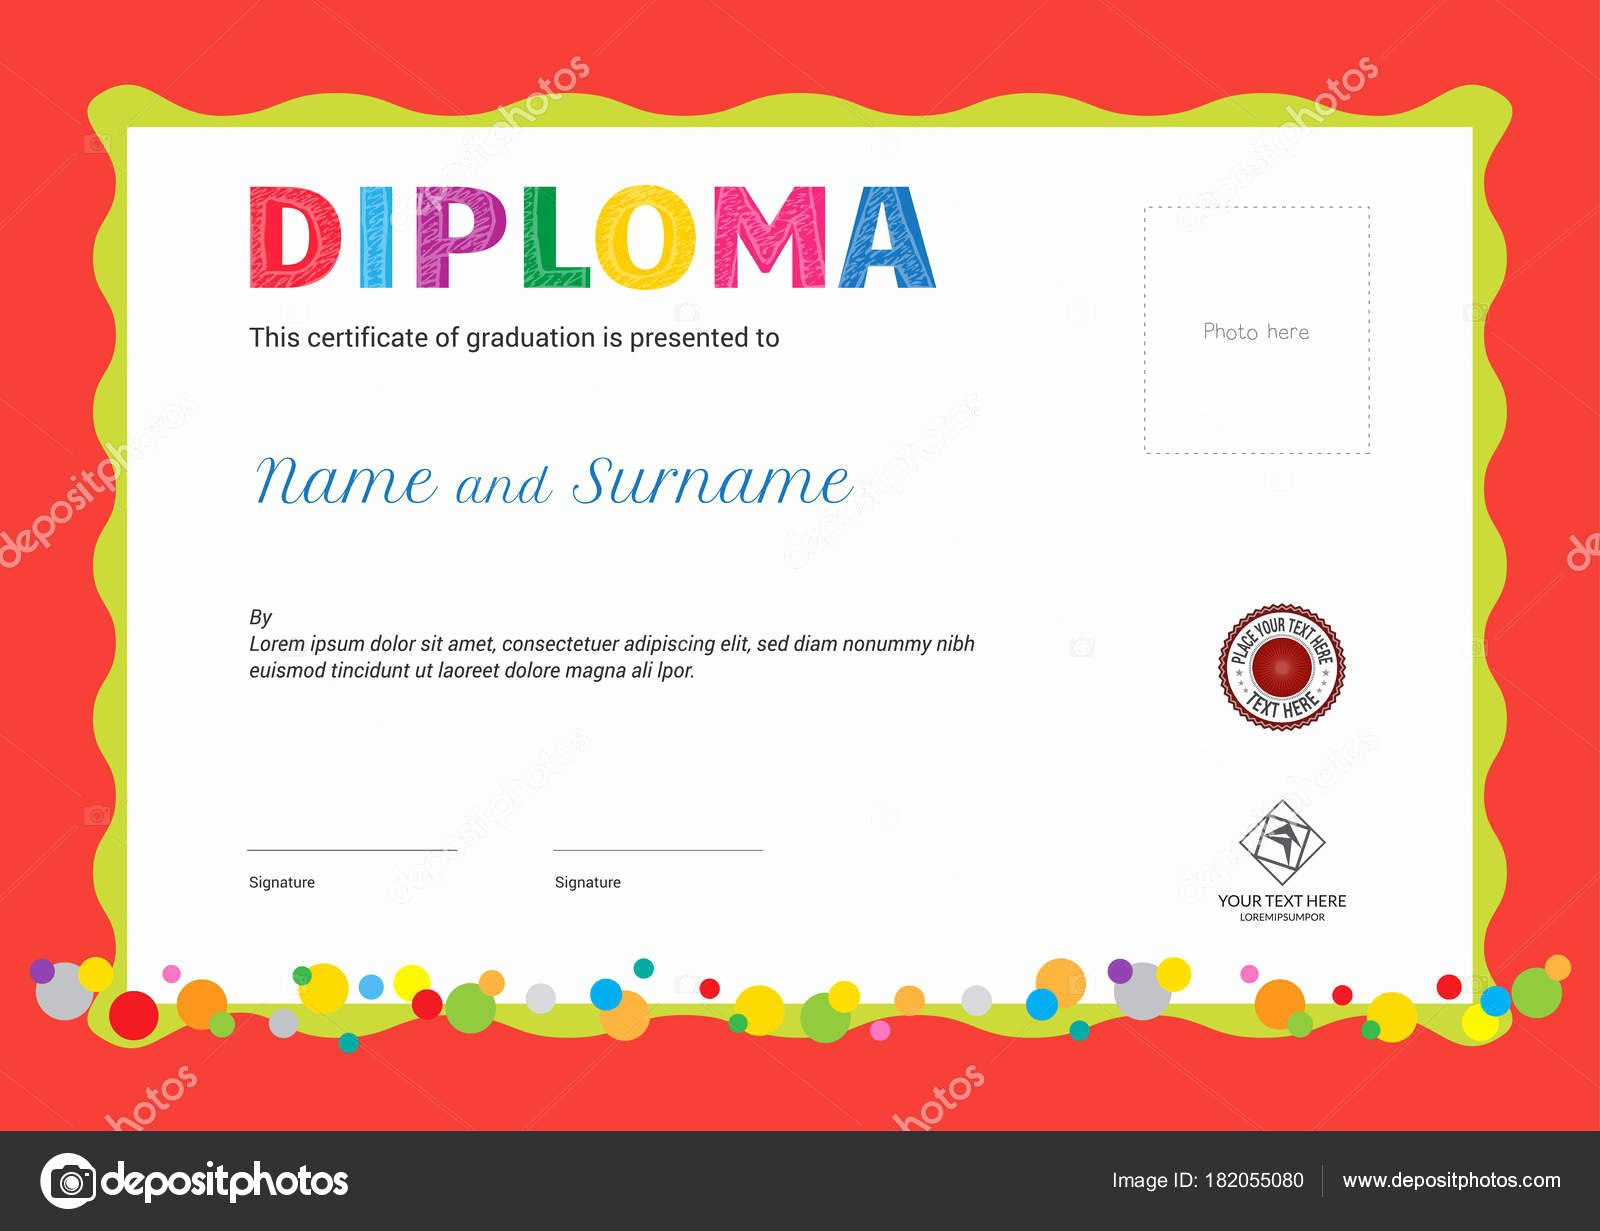 Summer Camp Certificate Template Luxury Kids Summer Camp Diploma or Certificate Template with